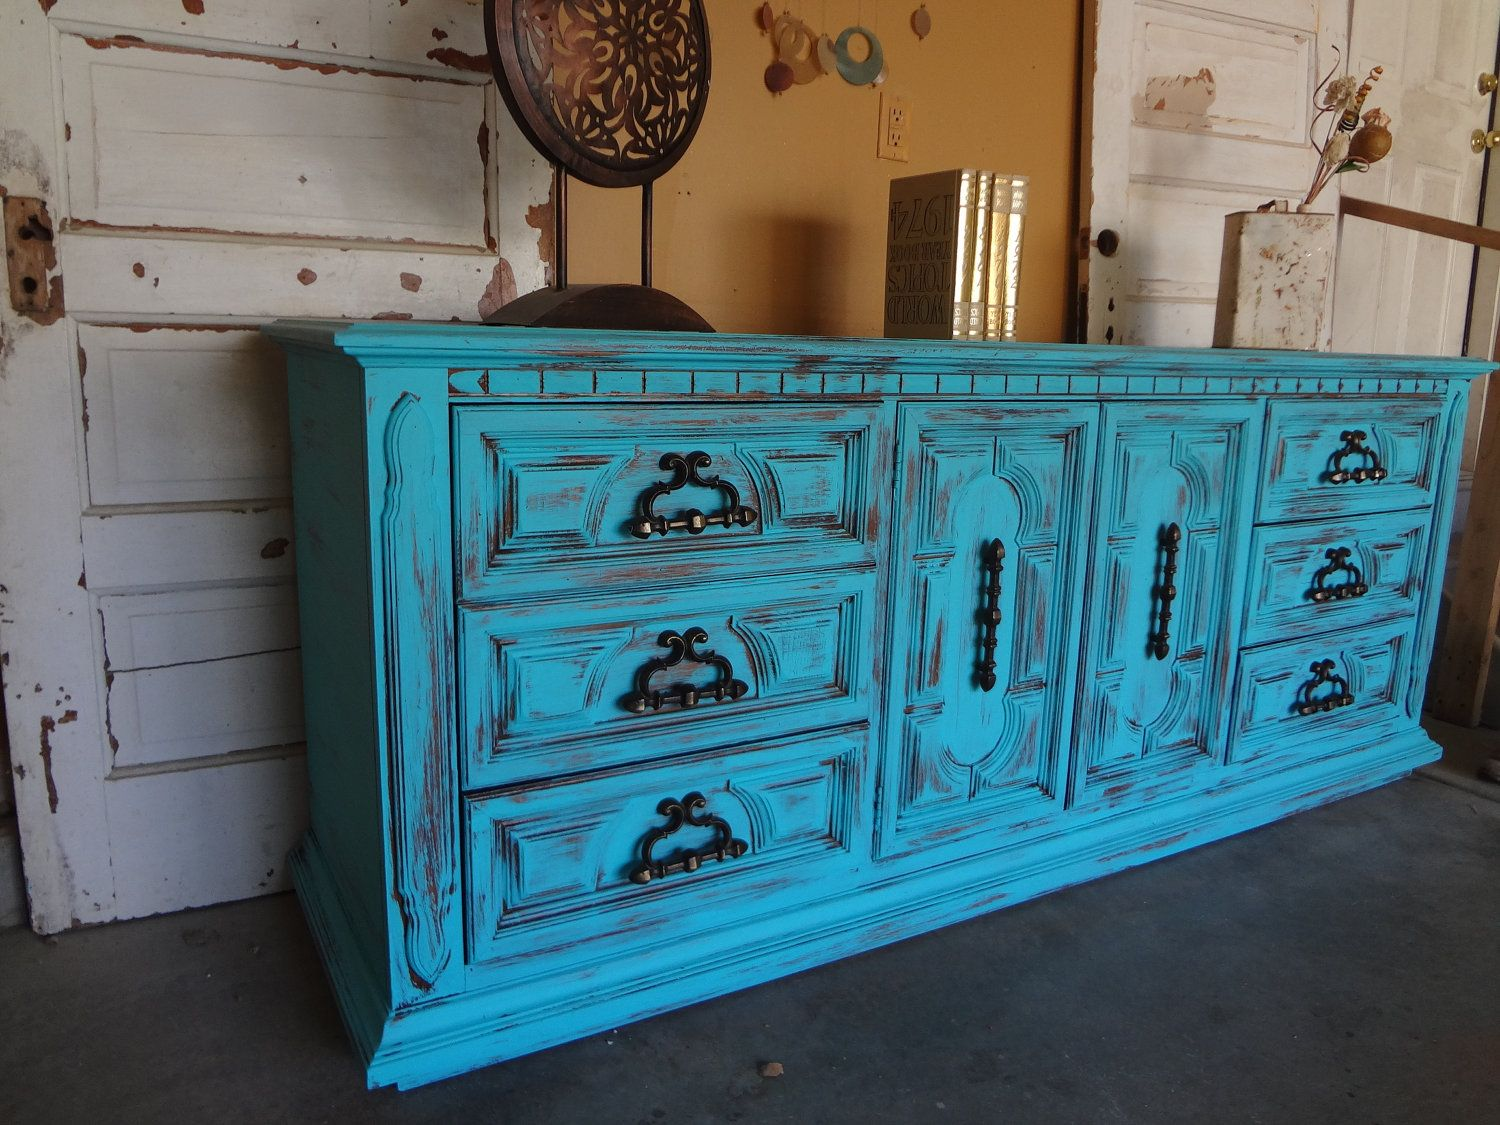 1000 images about distressed on pinterest distressed turquoise furniture turquoise and distressed dresser blue shabby chic furniture